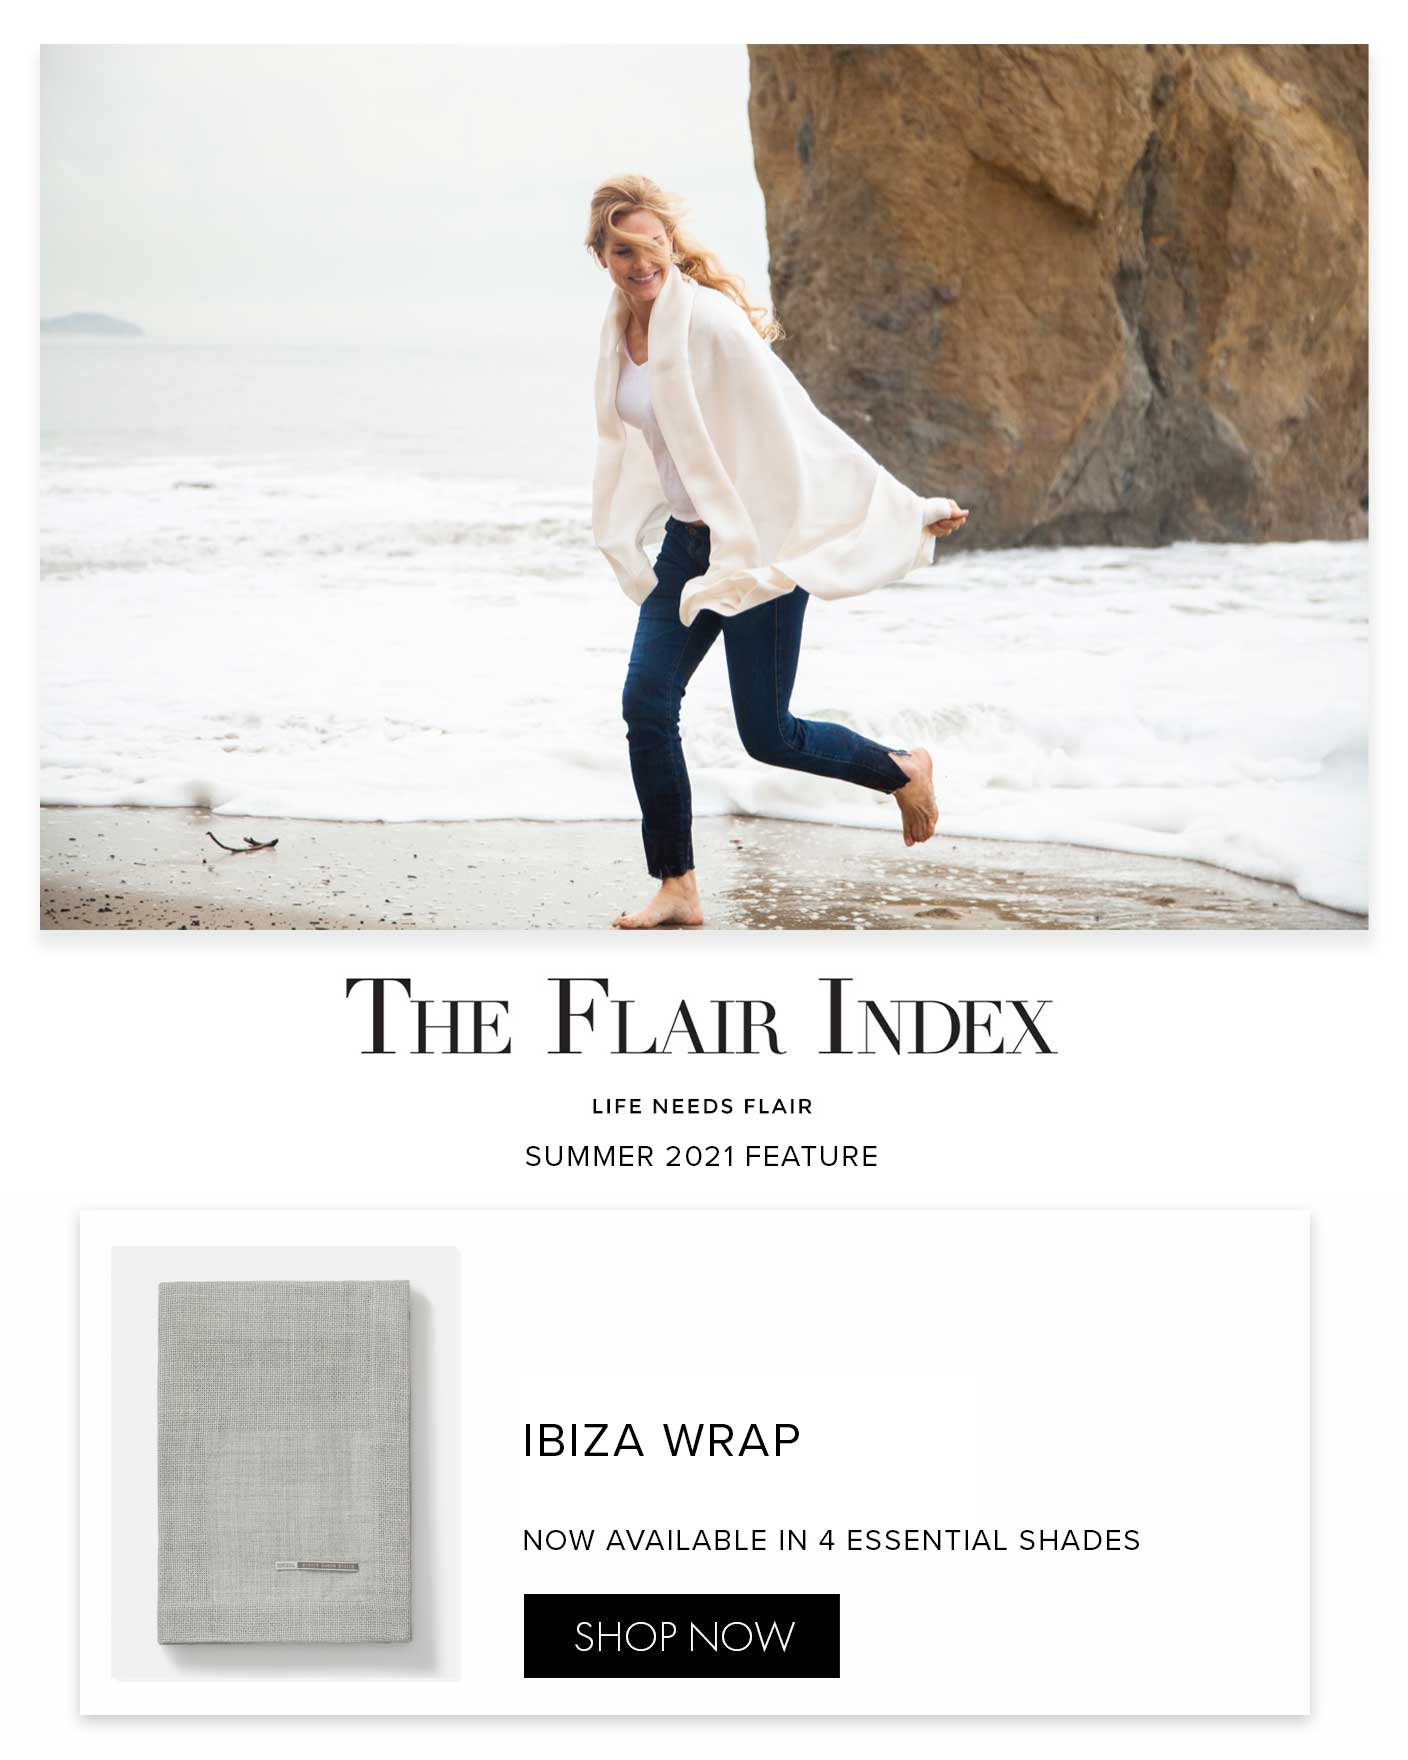 Alicia Adams Alpaca Fair Trade Made Acclaimed by Glamour, Architectural Digest, Vogue, O Magazine, Elle Decor